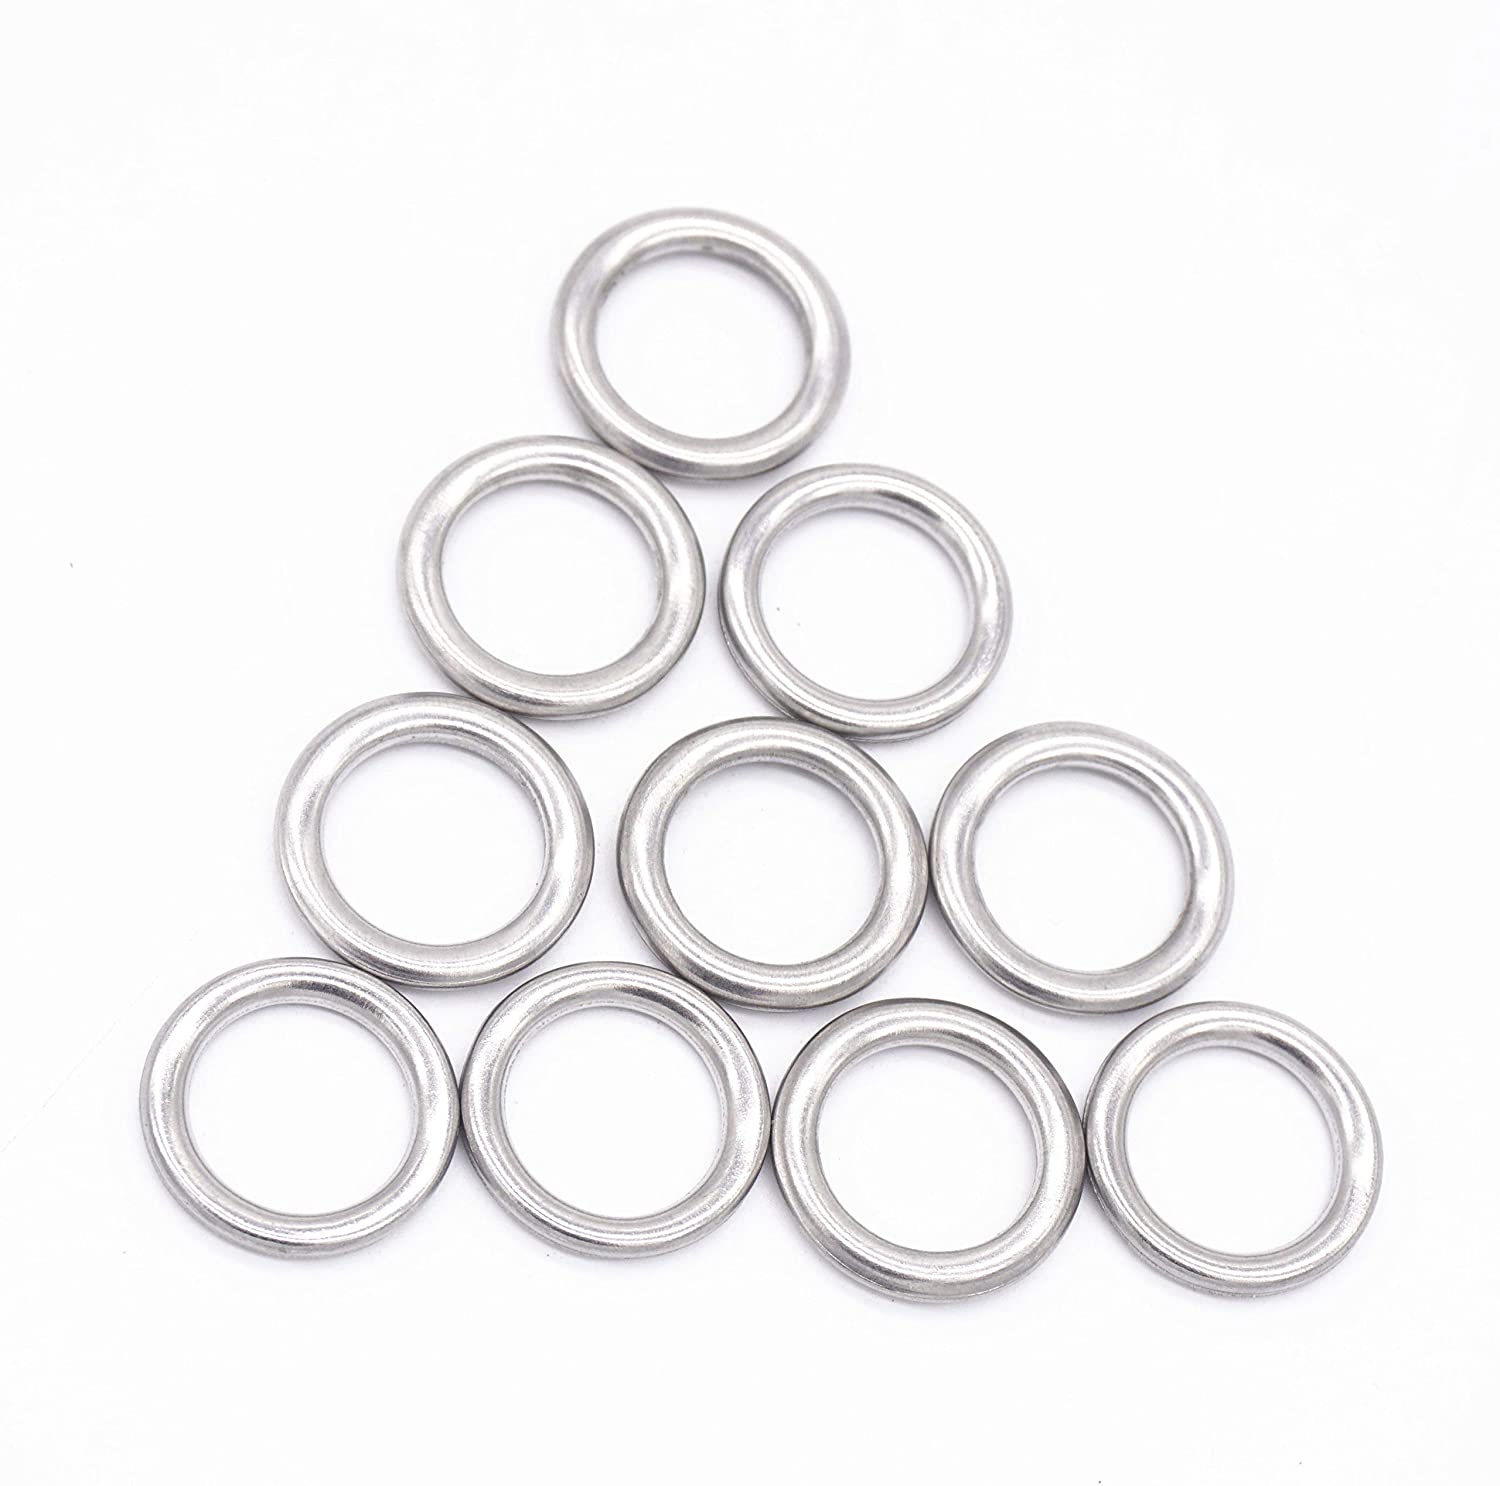 Transmission Drain Plug Gasket Engine Oil Drail Plug Crush Washer Seal Rings for Toyota 4Runner Lexus, Replacement # 35178-30010 3517830010, M12, Pack of 10 Vautoparts